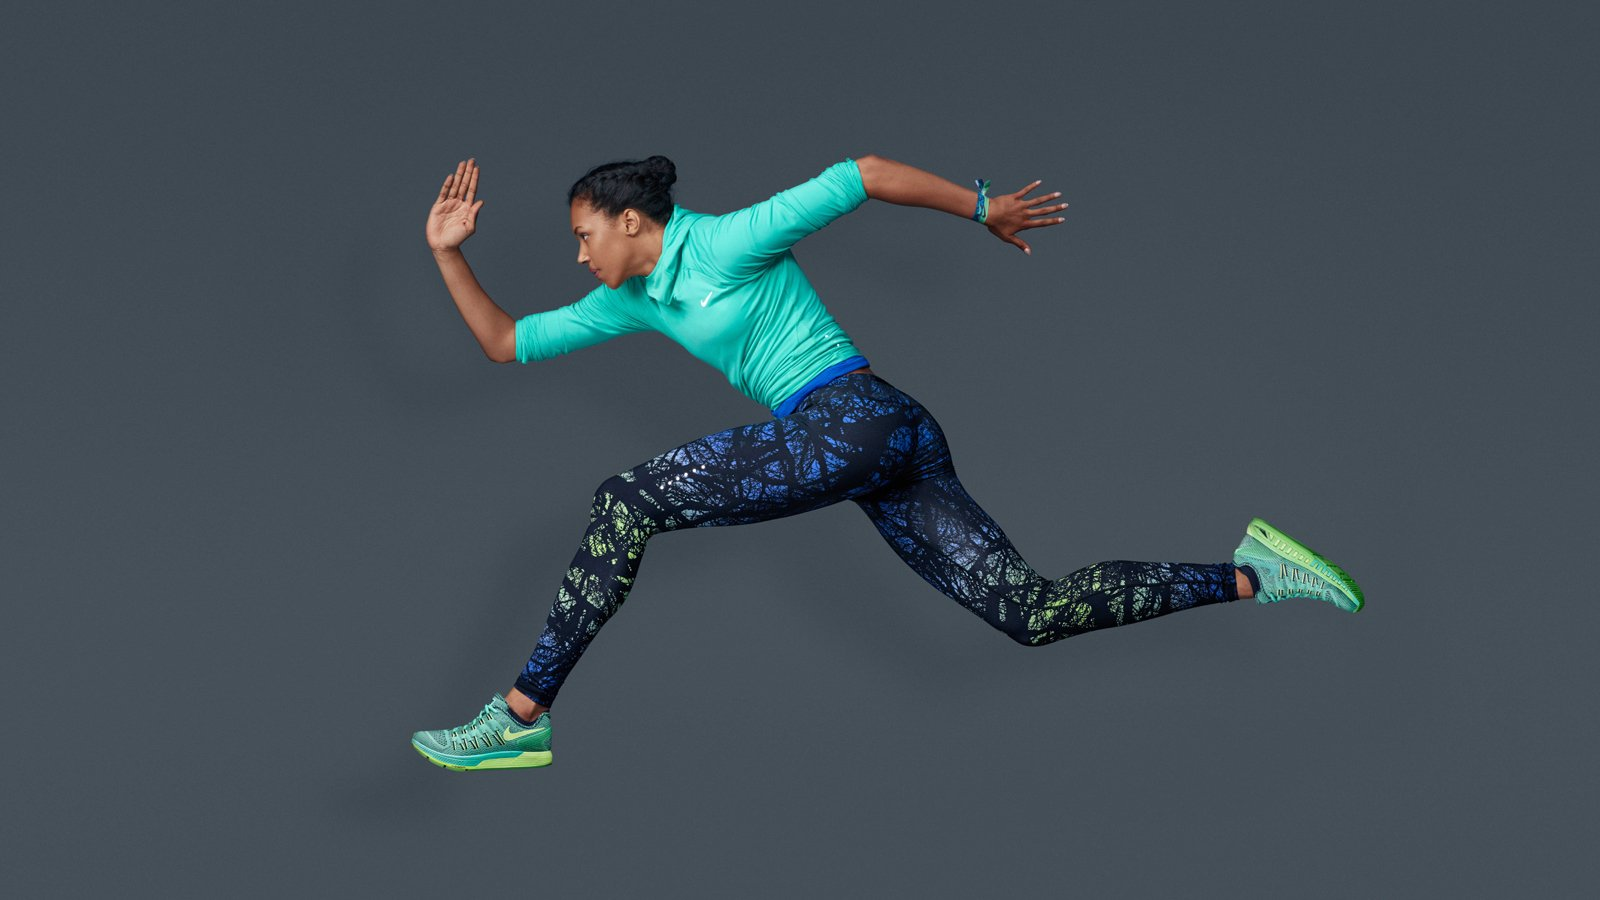 NikeWomen_FA15_Lookbook_MorganLake_RN_1_original.jpg